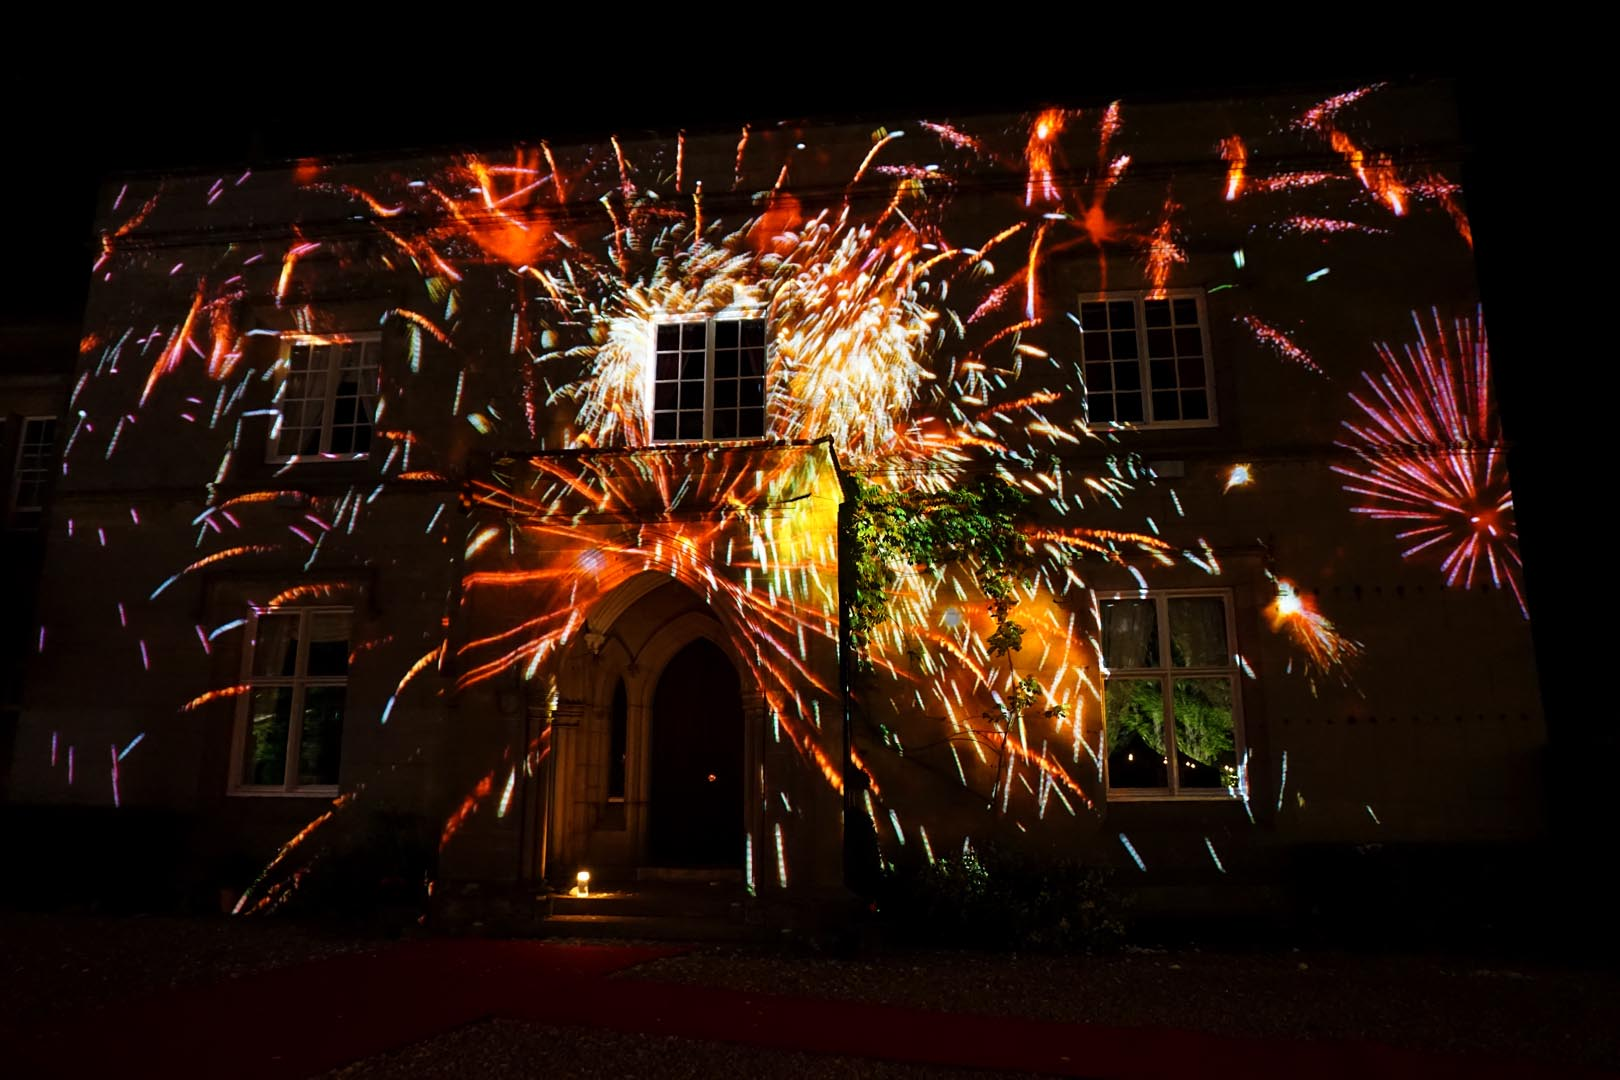 Video Mapping & Projection mapping - The number 1 resource